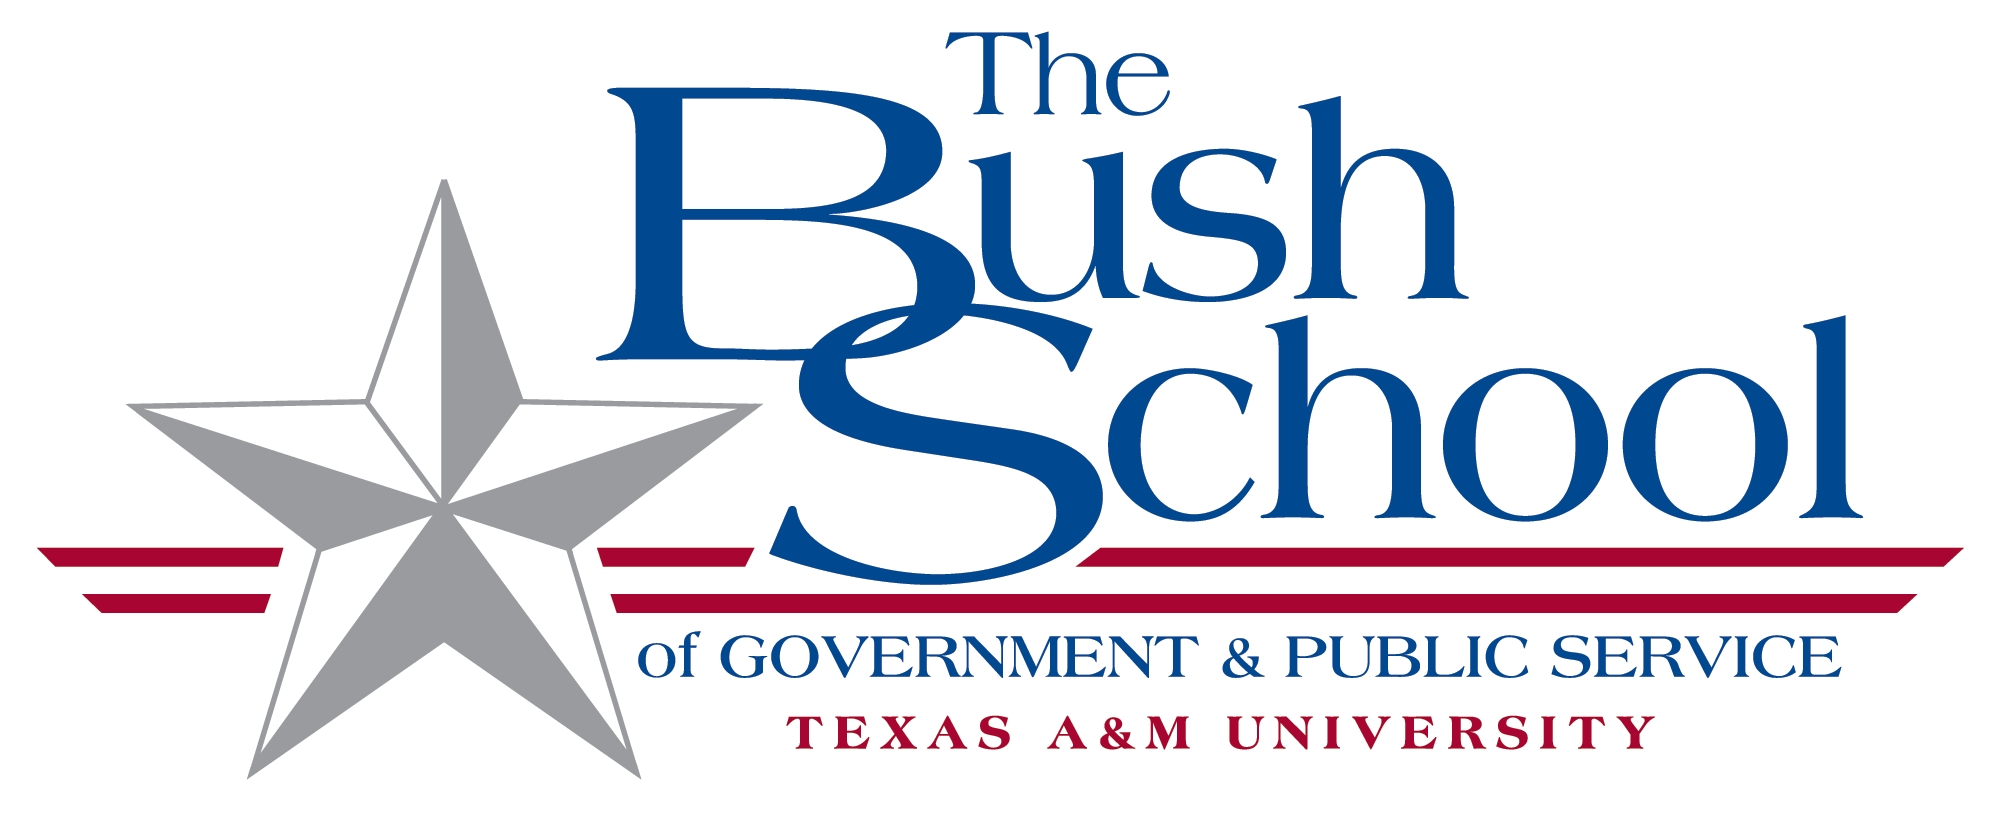 bush-school-logo-3.jpg